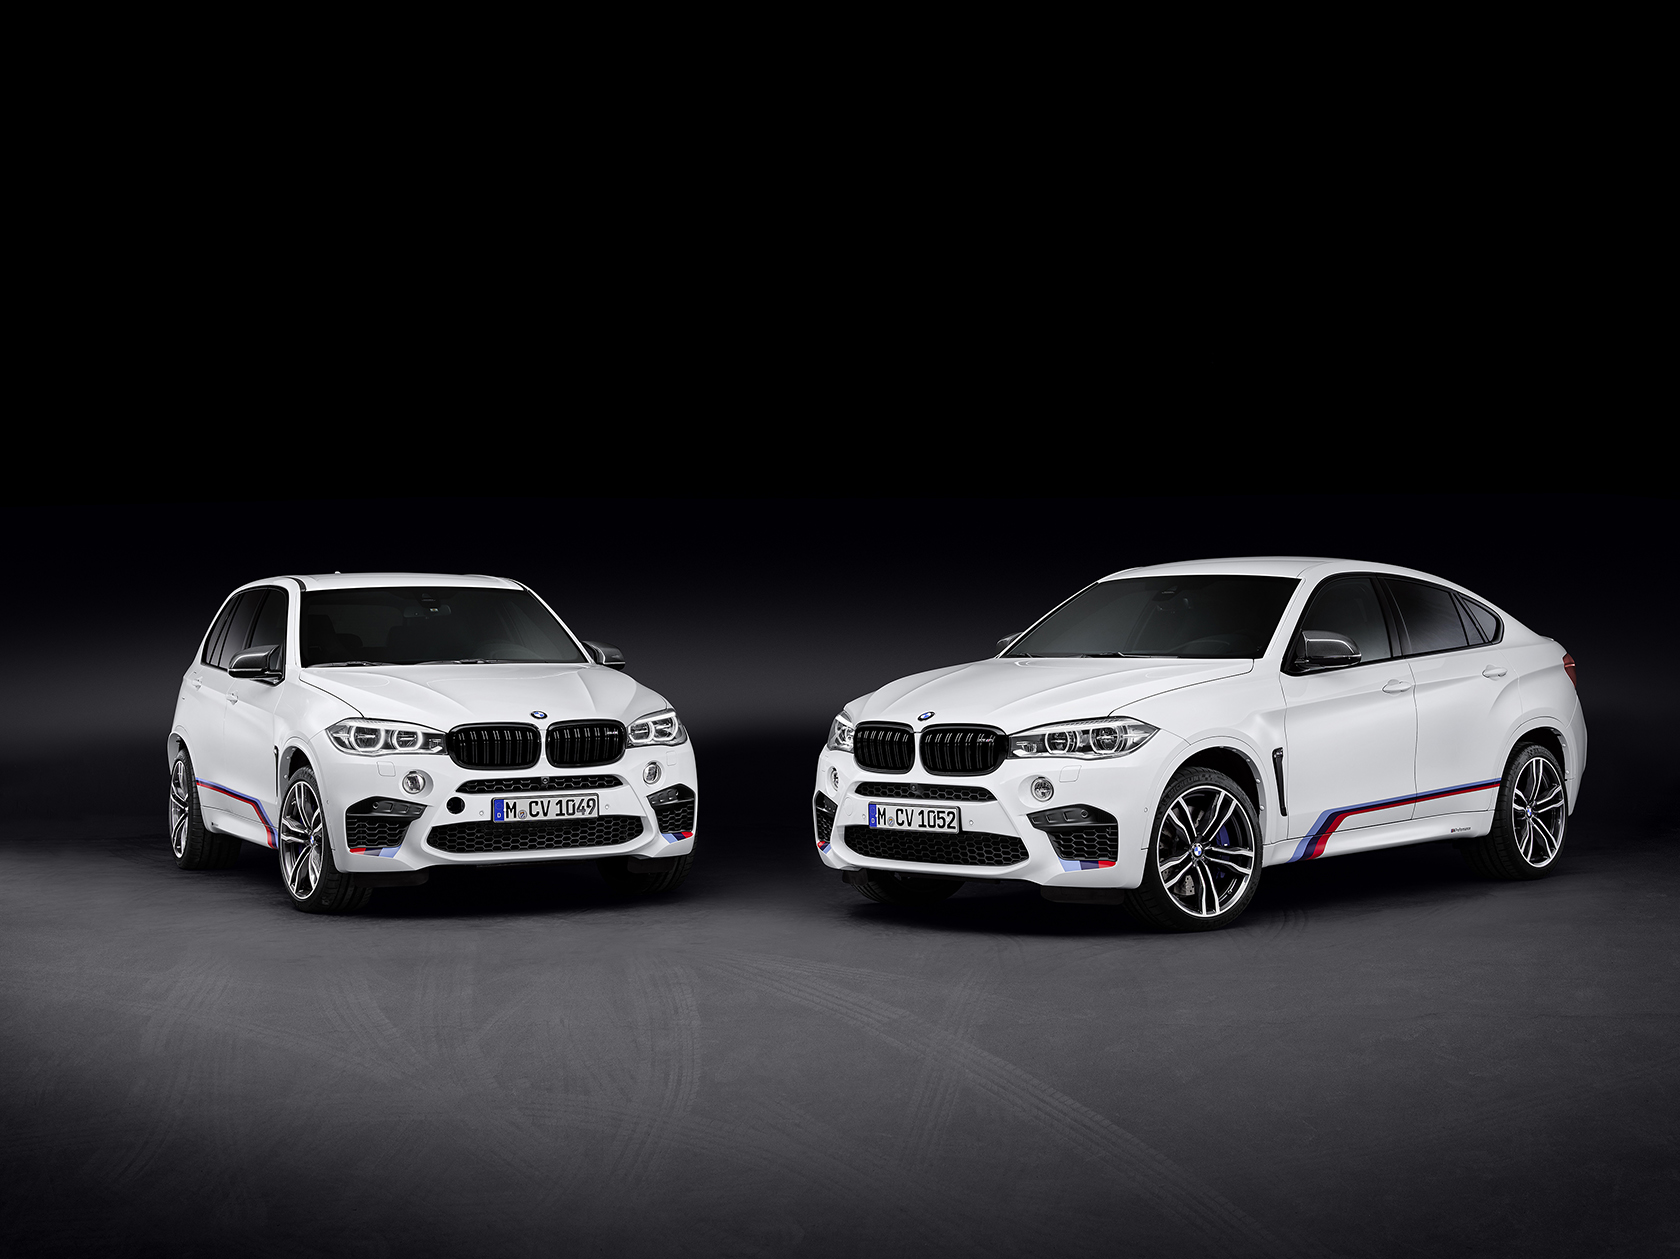 The new BMW X5 M and BMW X6 M with BMW M Performance Parts